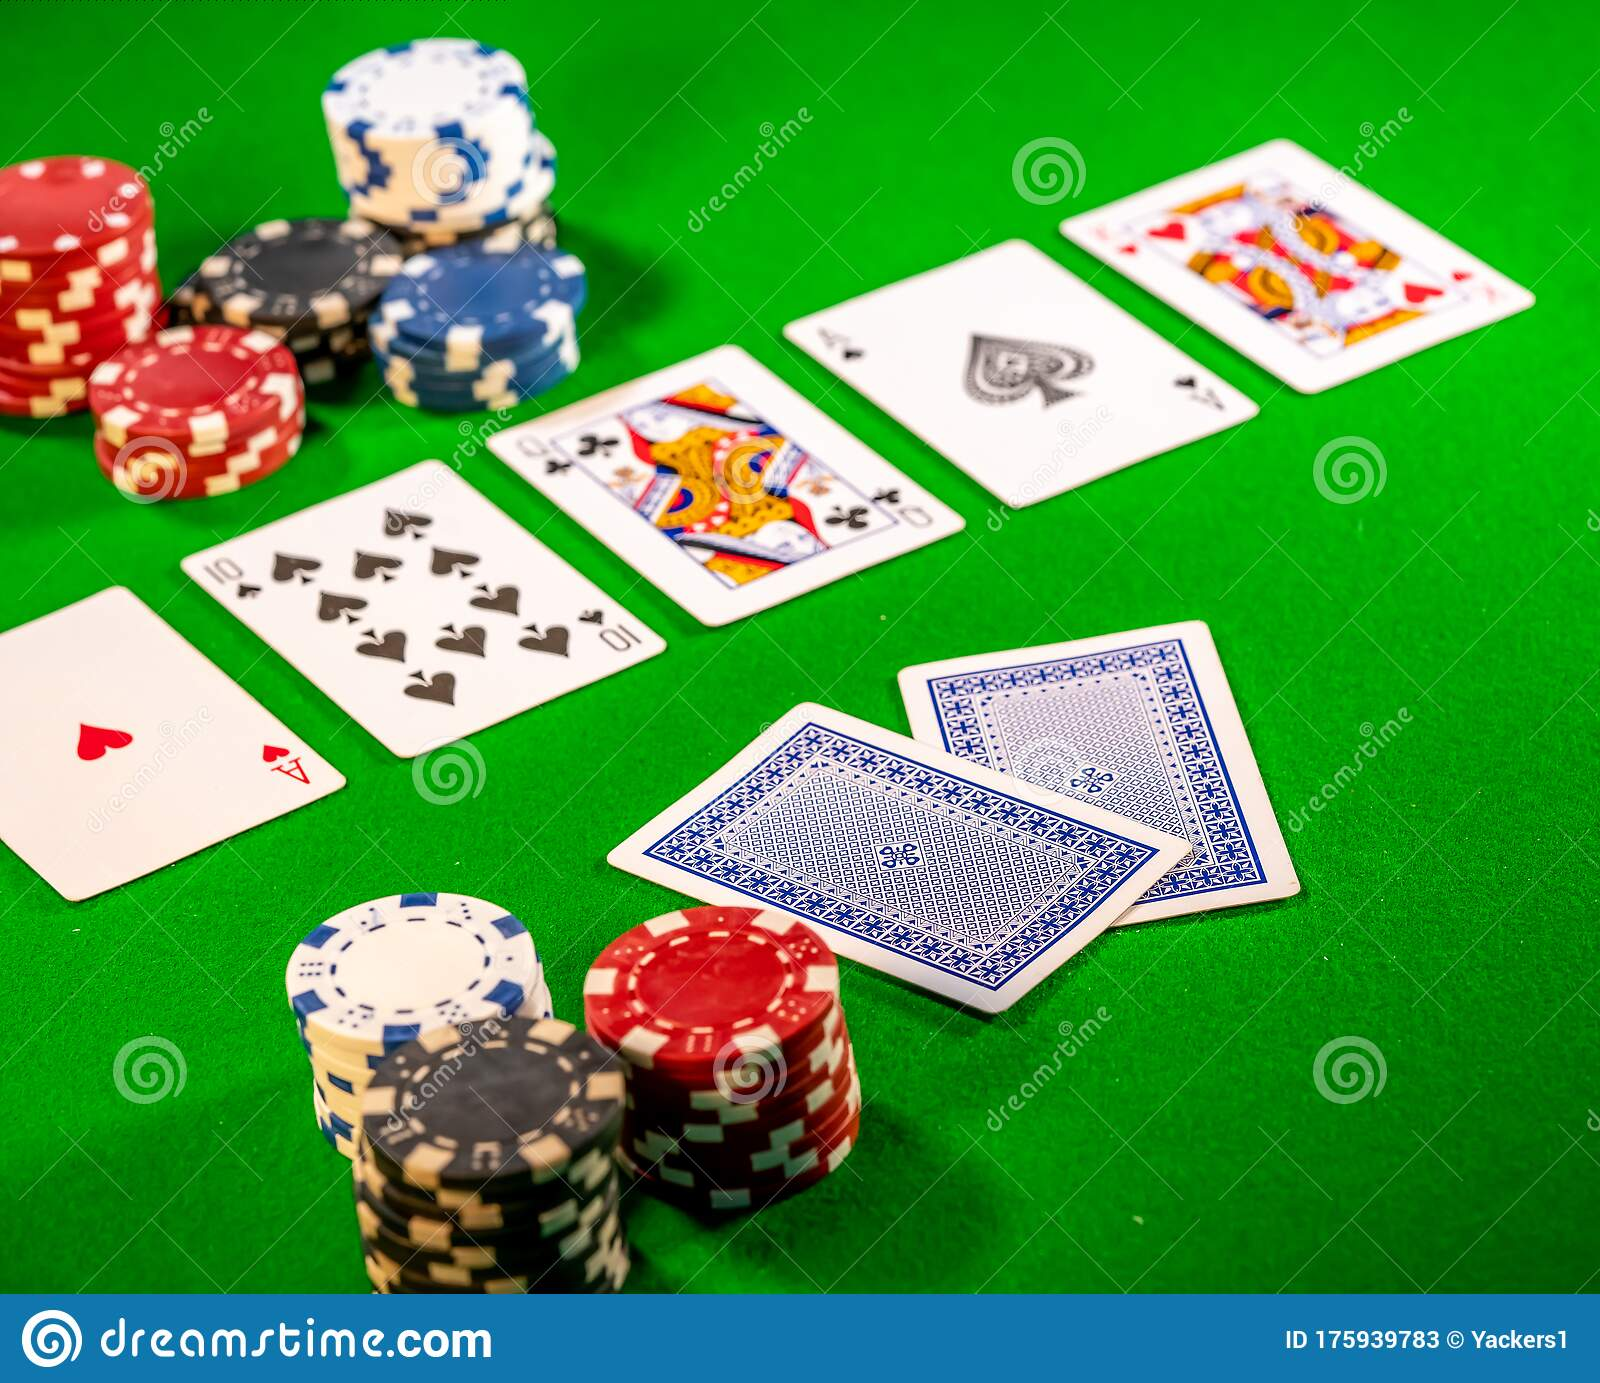 The Turn Also Known As Fourth Street In A Game Of Poker Editorial Stock Photo Image Of Chip Hand 175939783